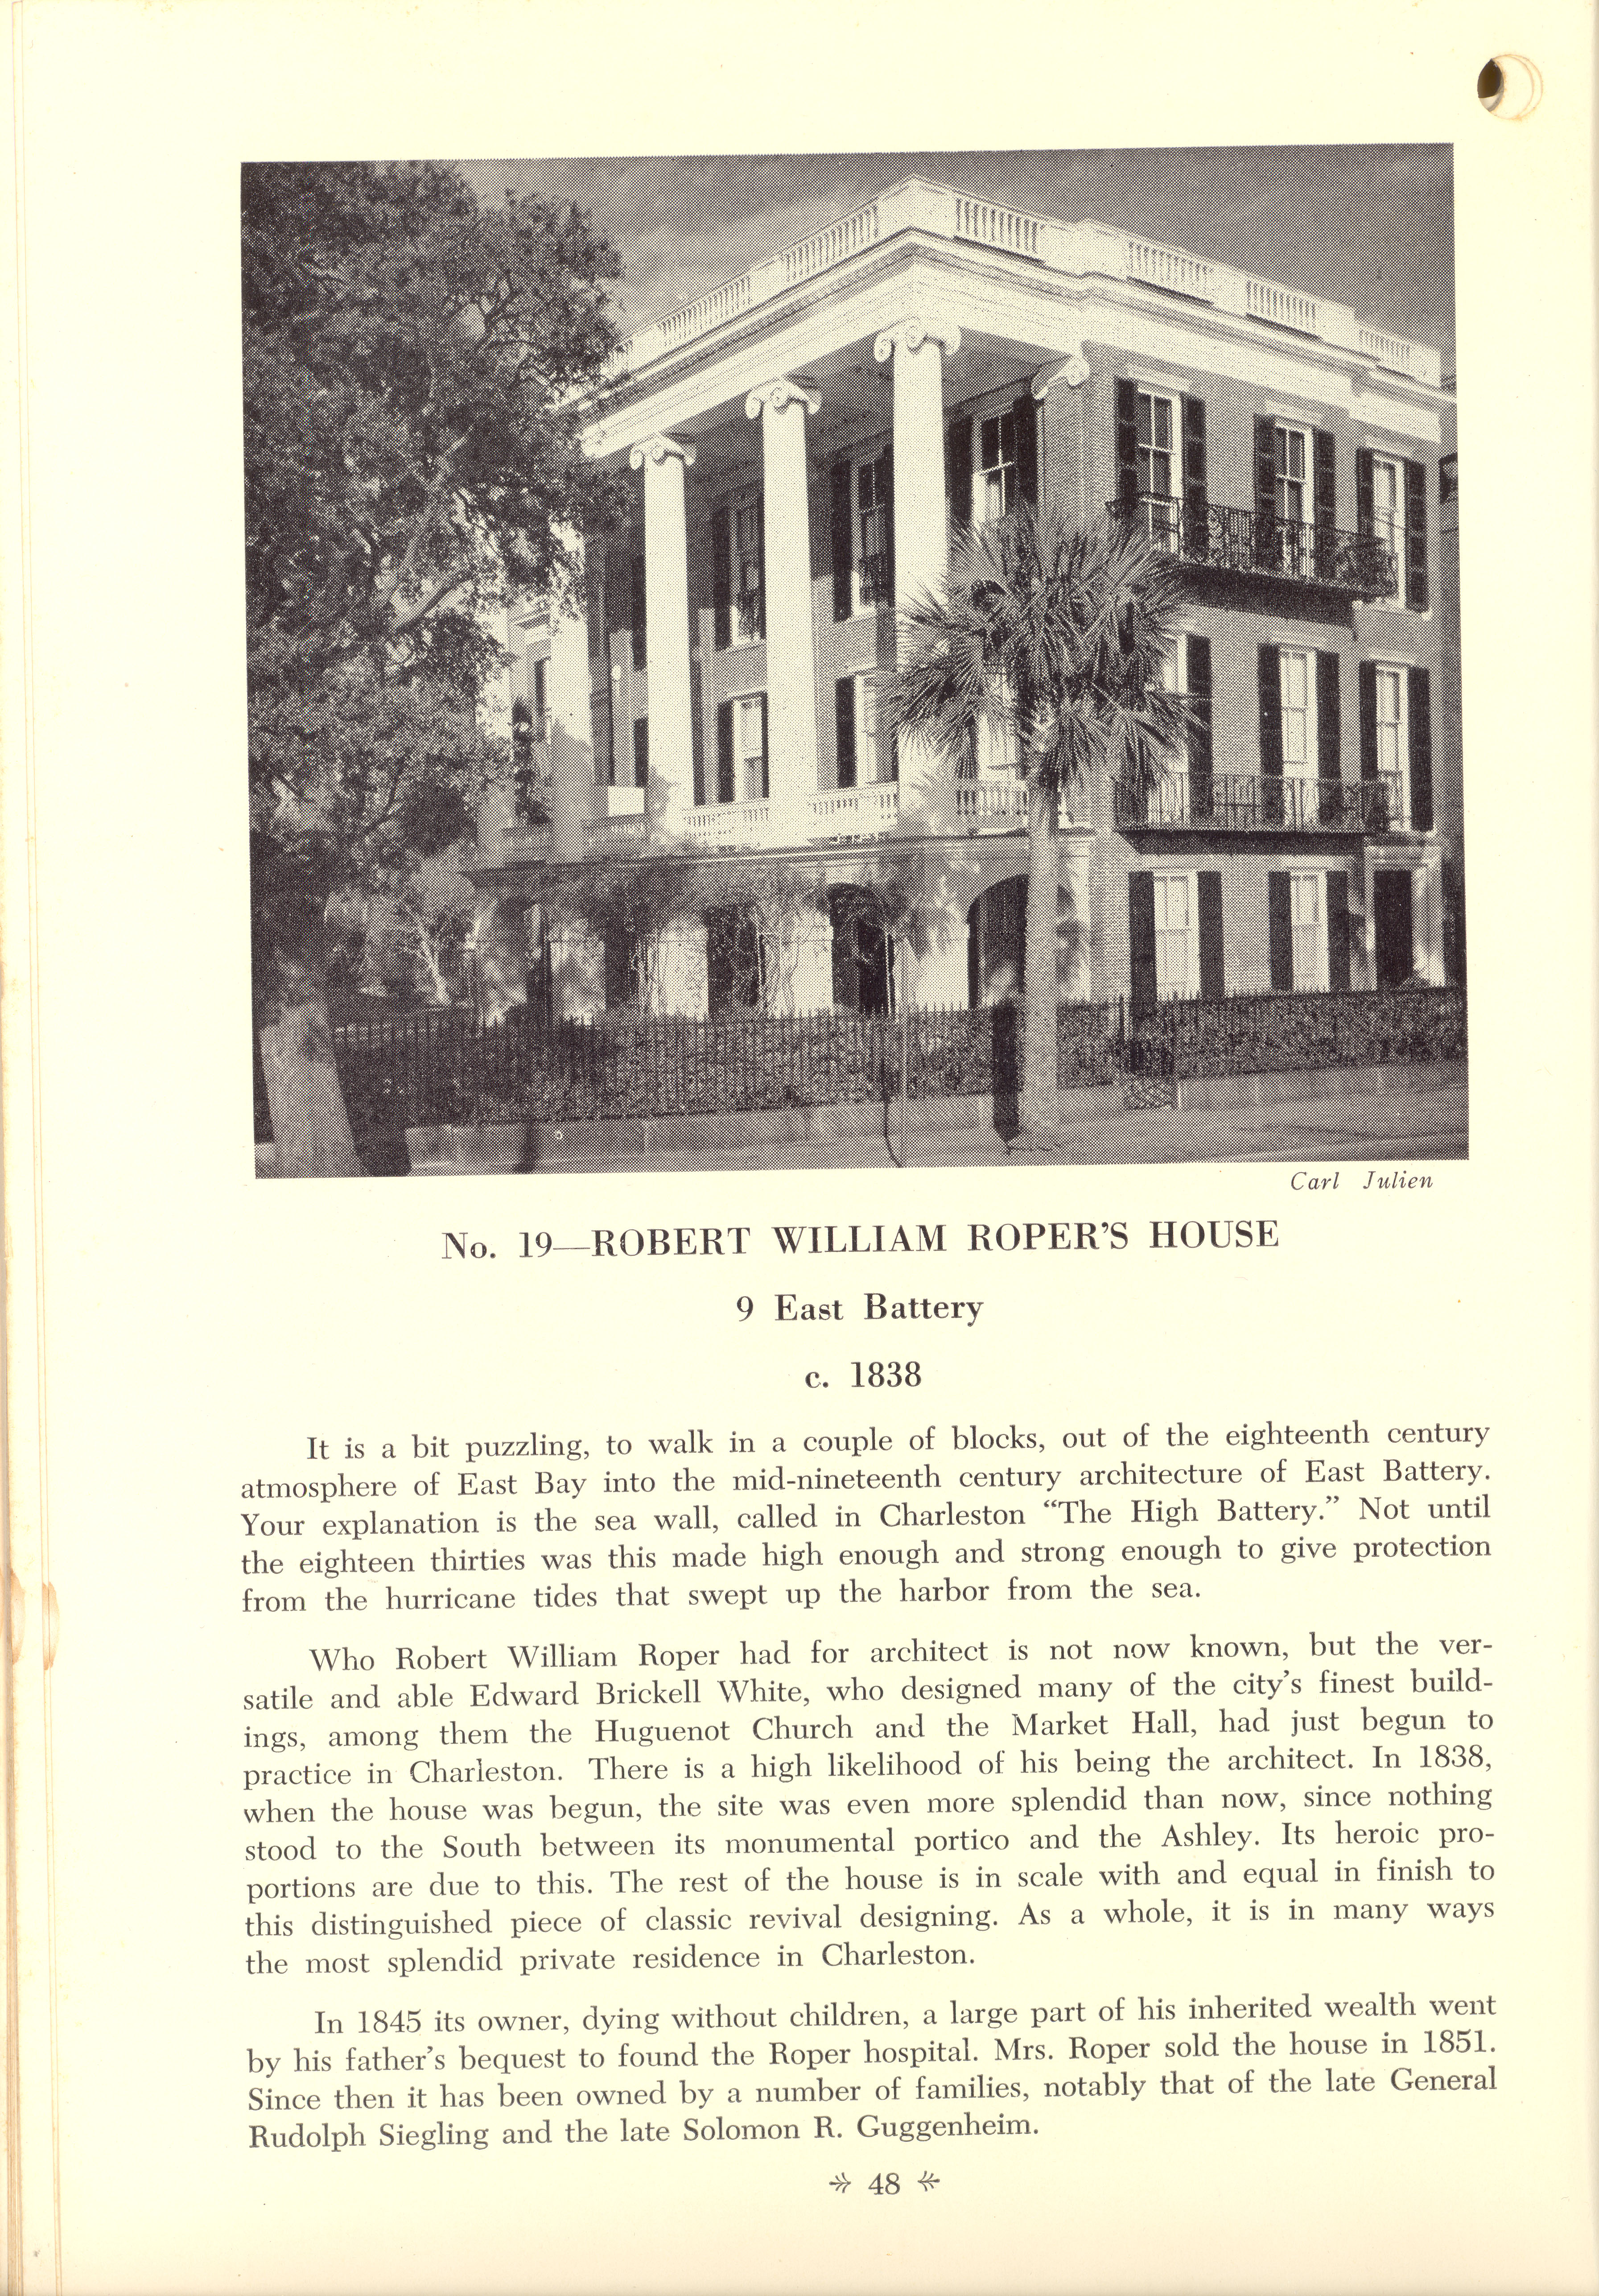 Page 48:  No. 19 - Robert William Roper's House, 9 East Battery, c. 1838